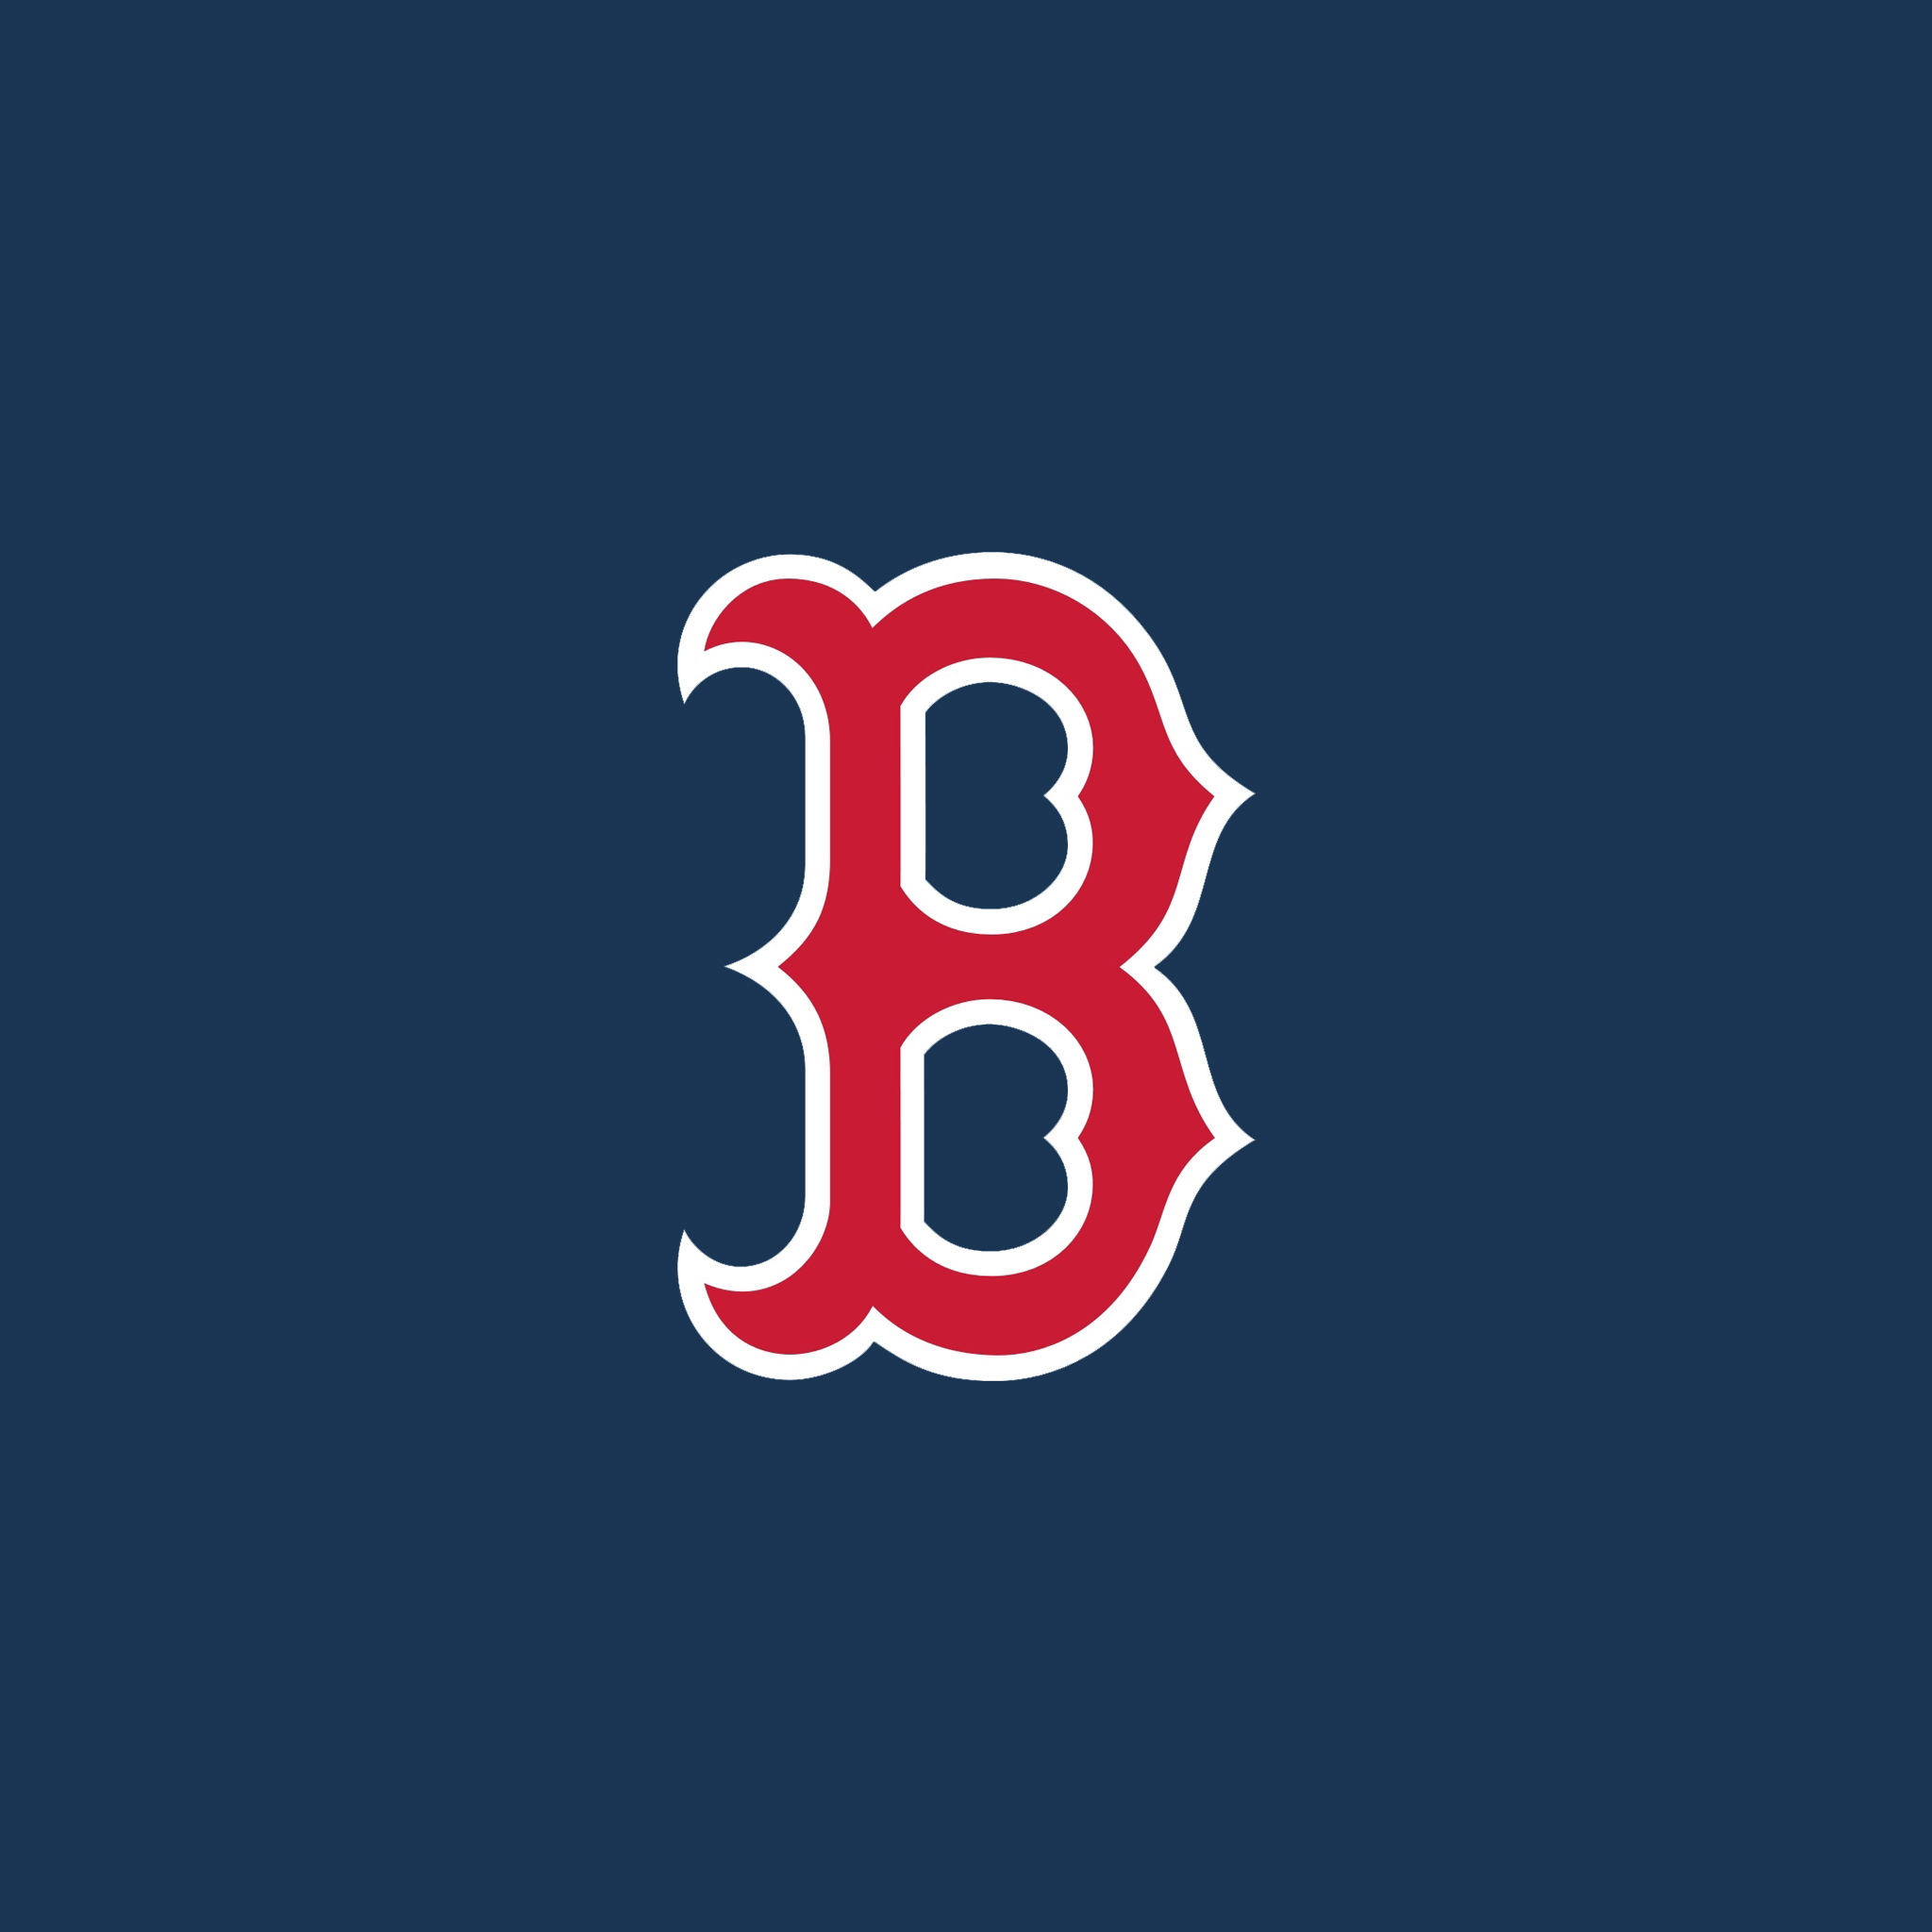 2048x2048 - Boston Red Sox Wallpaper Screensavers 30